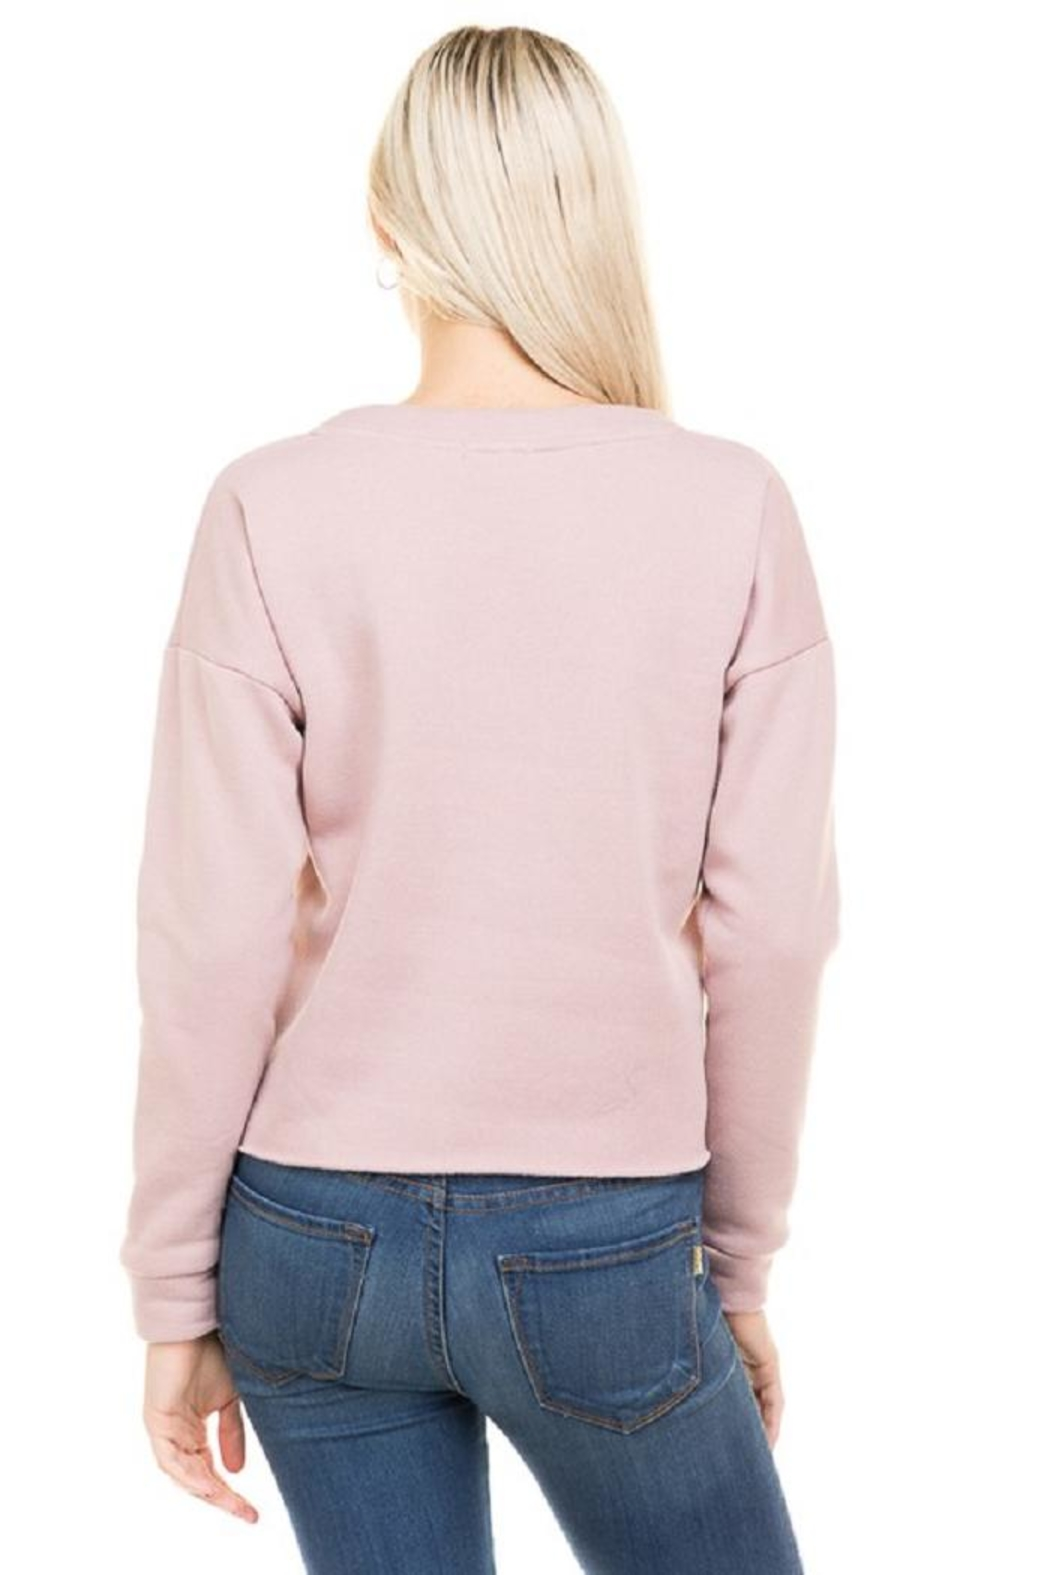 Hearts & Hips Lace Up Sweatshirt - Front Full Image